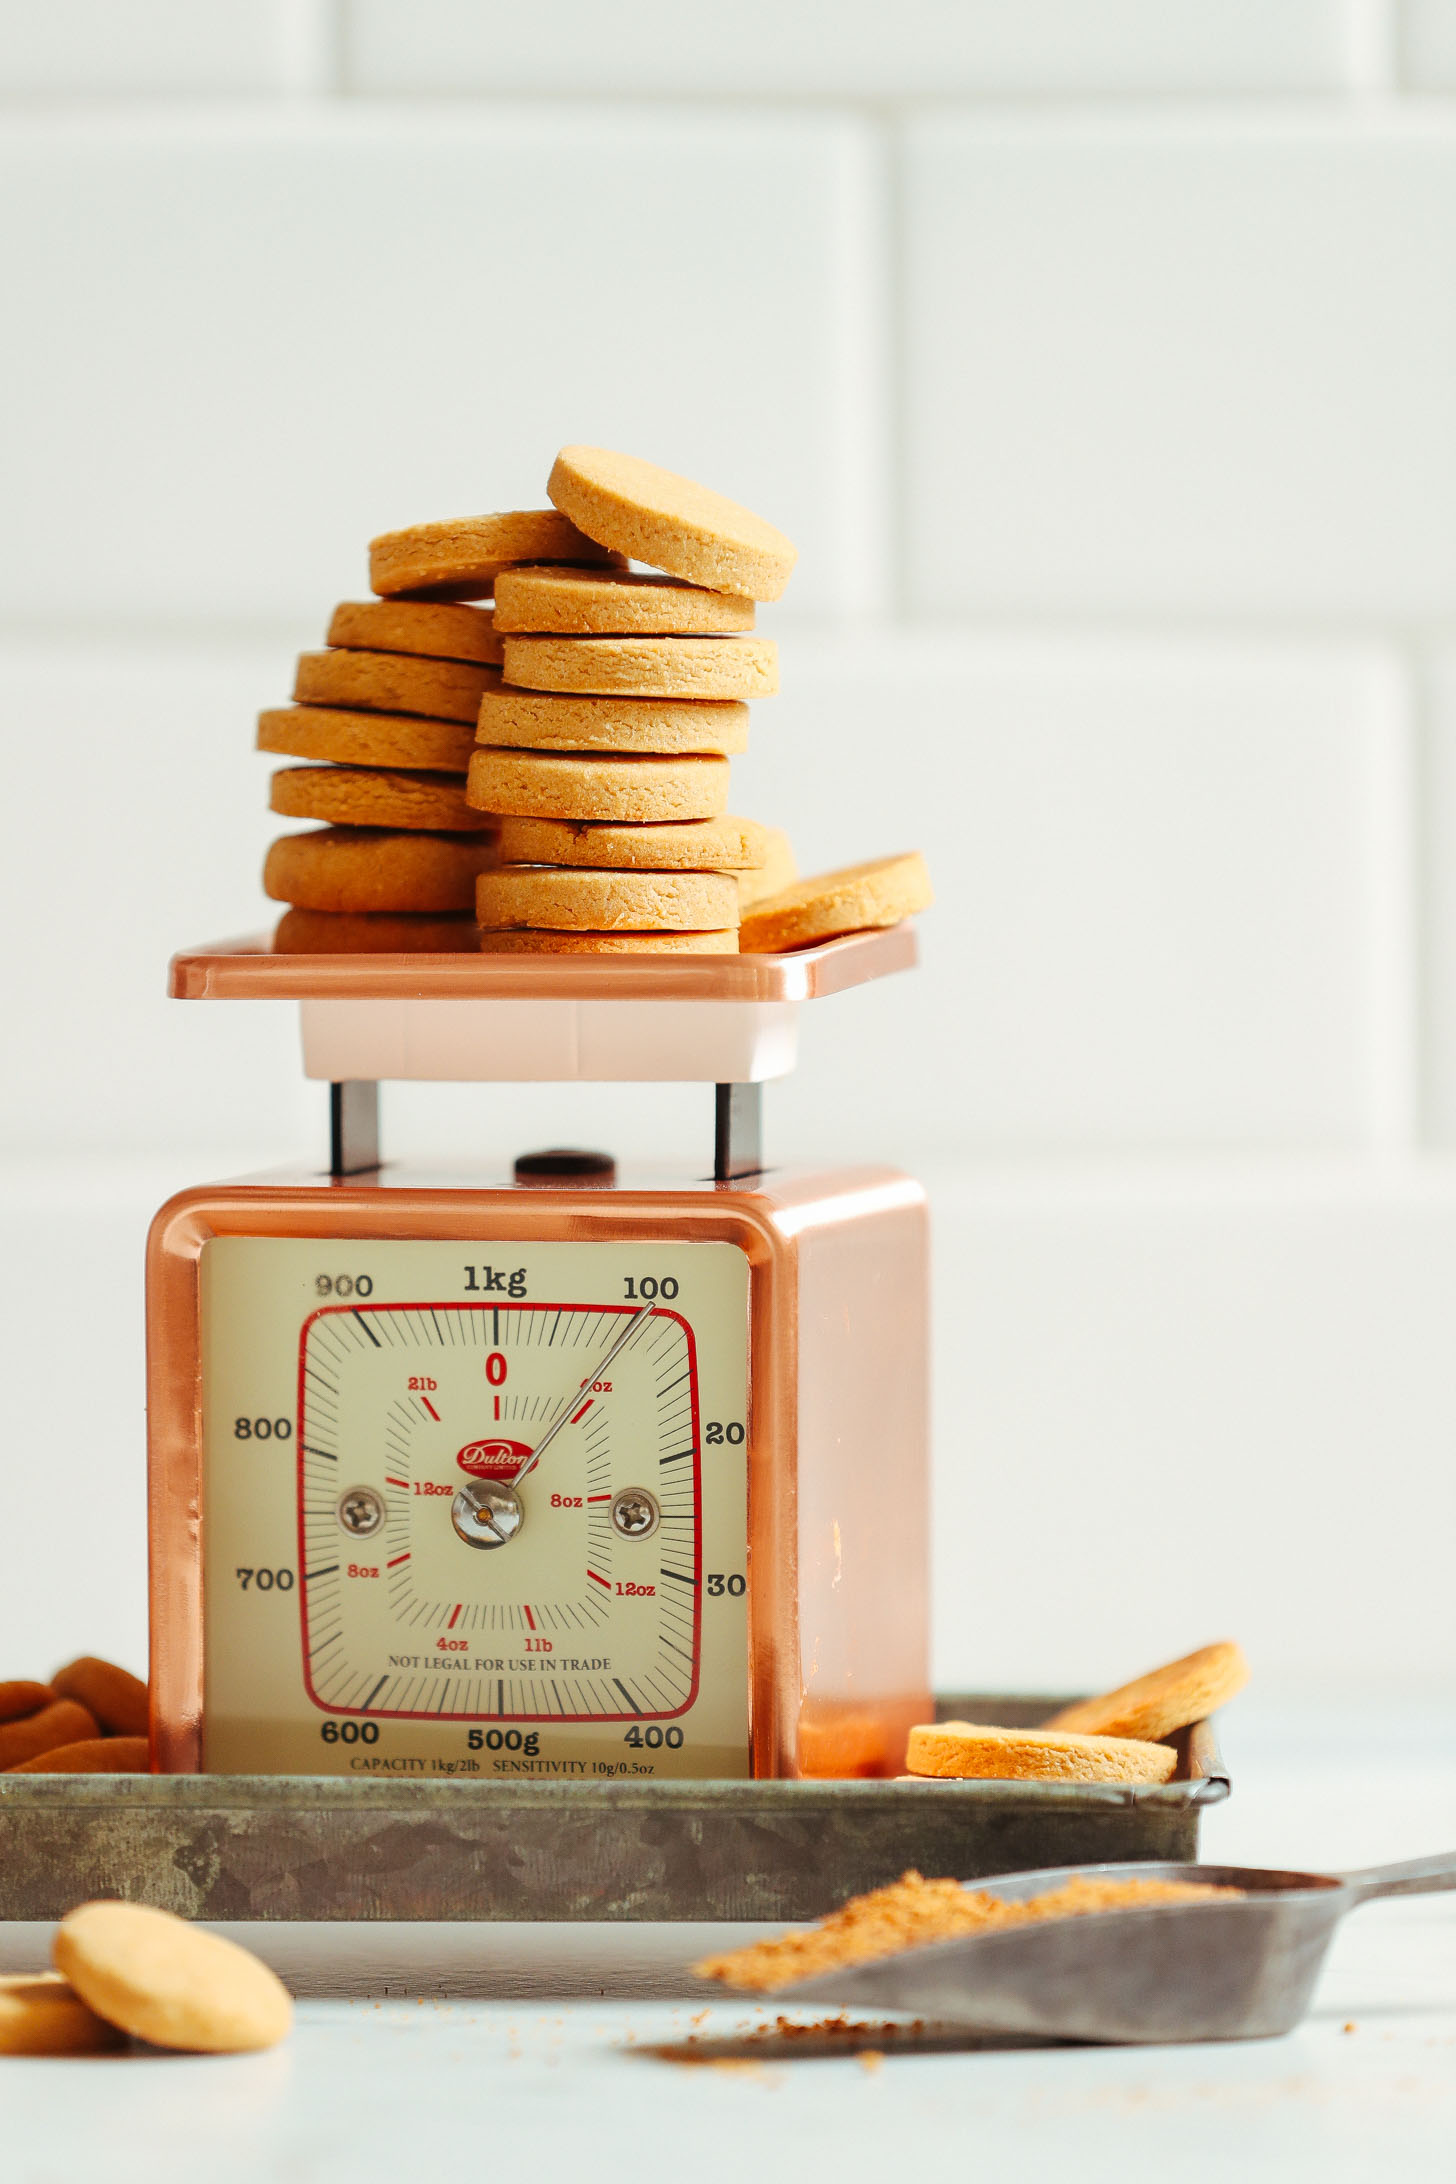 Scale loaded up with a batch of our Vegan Gluten Free Vanilla Wafers recipe